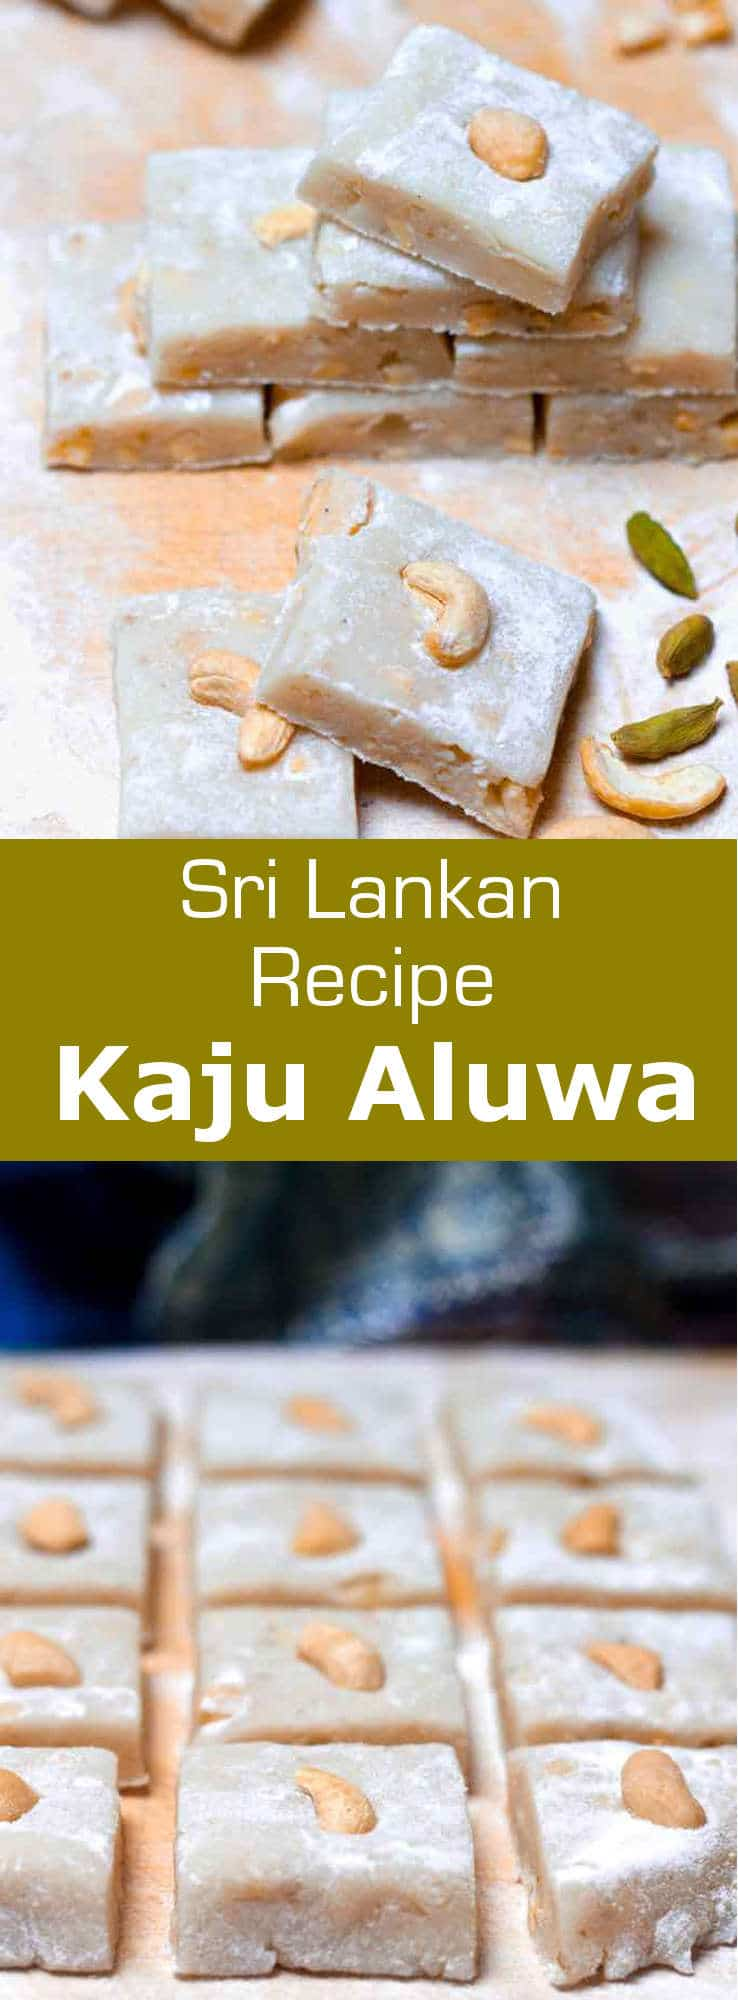 Sri Lankan kaju aluwa is a fragrantly spiced, nutty sweetmeat which is often eaten during Sinhalese New Year celebrations. It's also known as Sri Lankan cashew slice. #SriLanka #SriLankanCuisine #SriLankanDessert #Dessert #DessertRecipe #SriLankanRecipe #Confection #WorldCuisine #196flavors